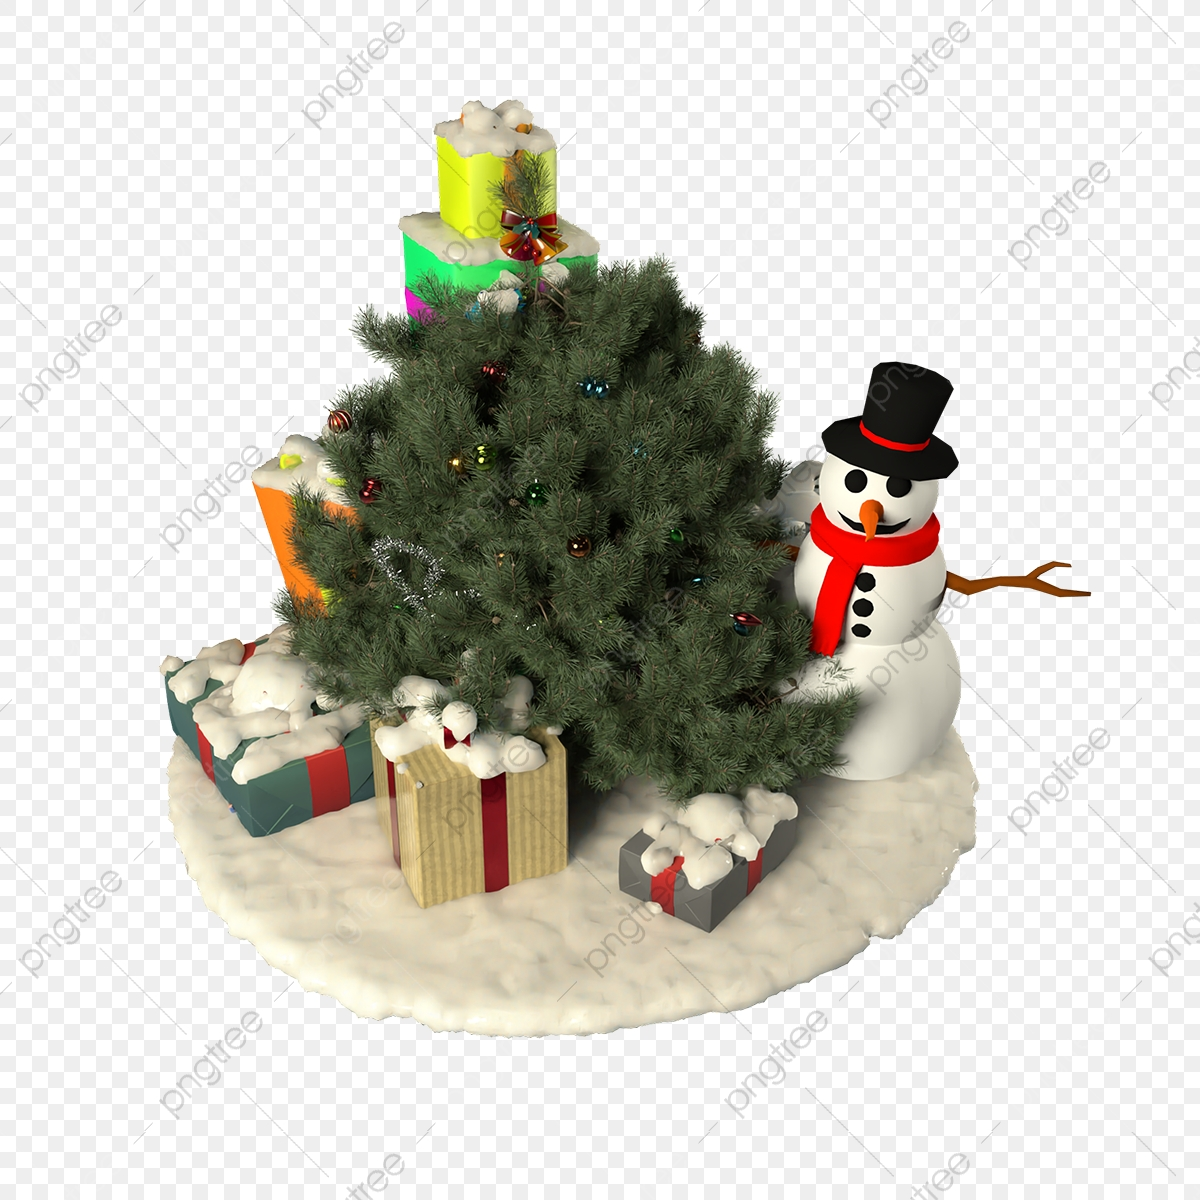 Gift Box And Little Snowman Under The Small Christmas Tree Christmas Tree Christmas Snow Png Transparent Clipart Image And Psd File For Free Download